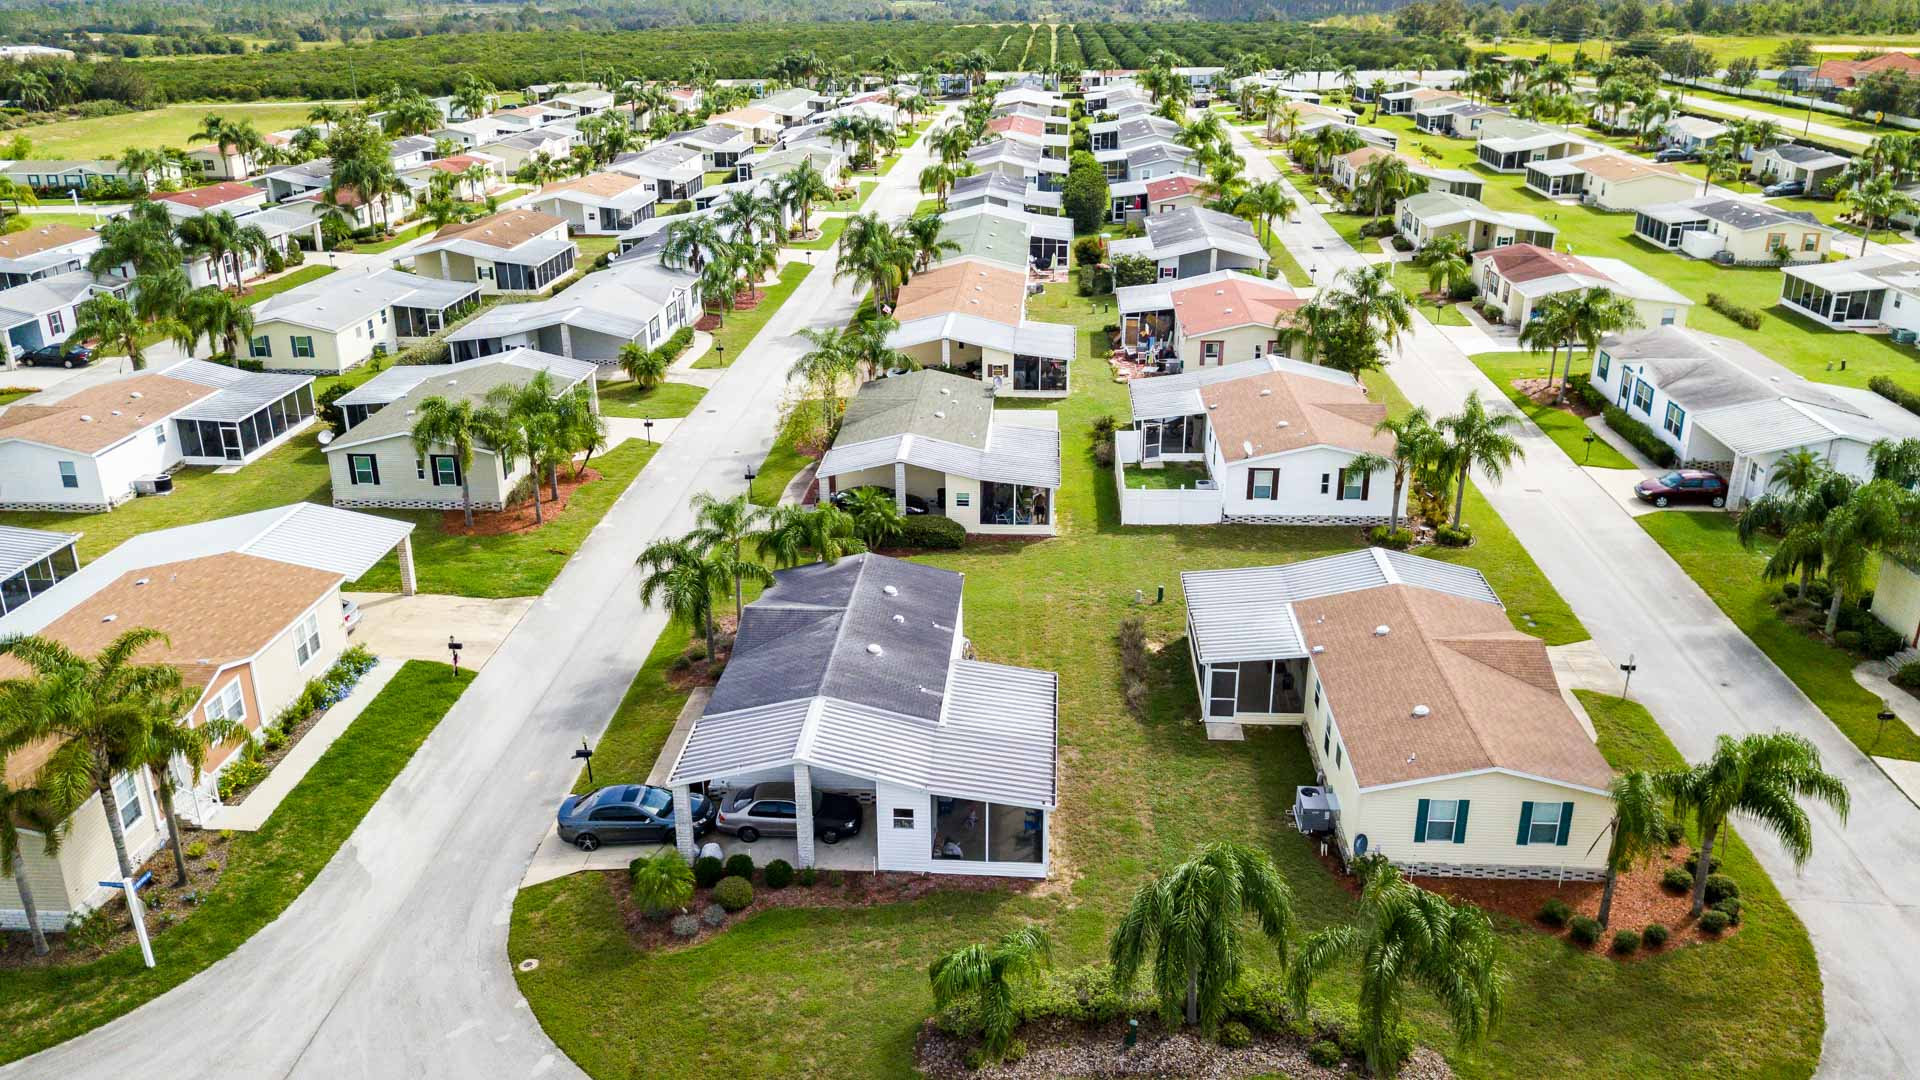 Palm Key Village Manufactured Homes Community Aerial View in Davenport, FL